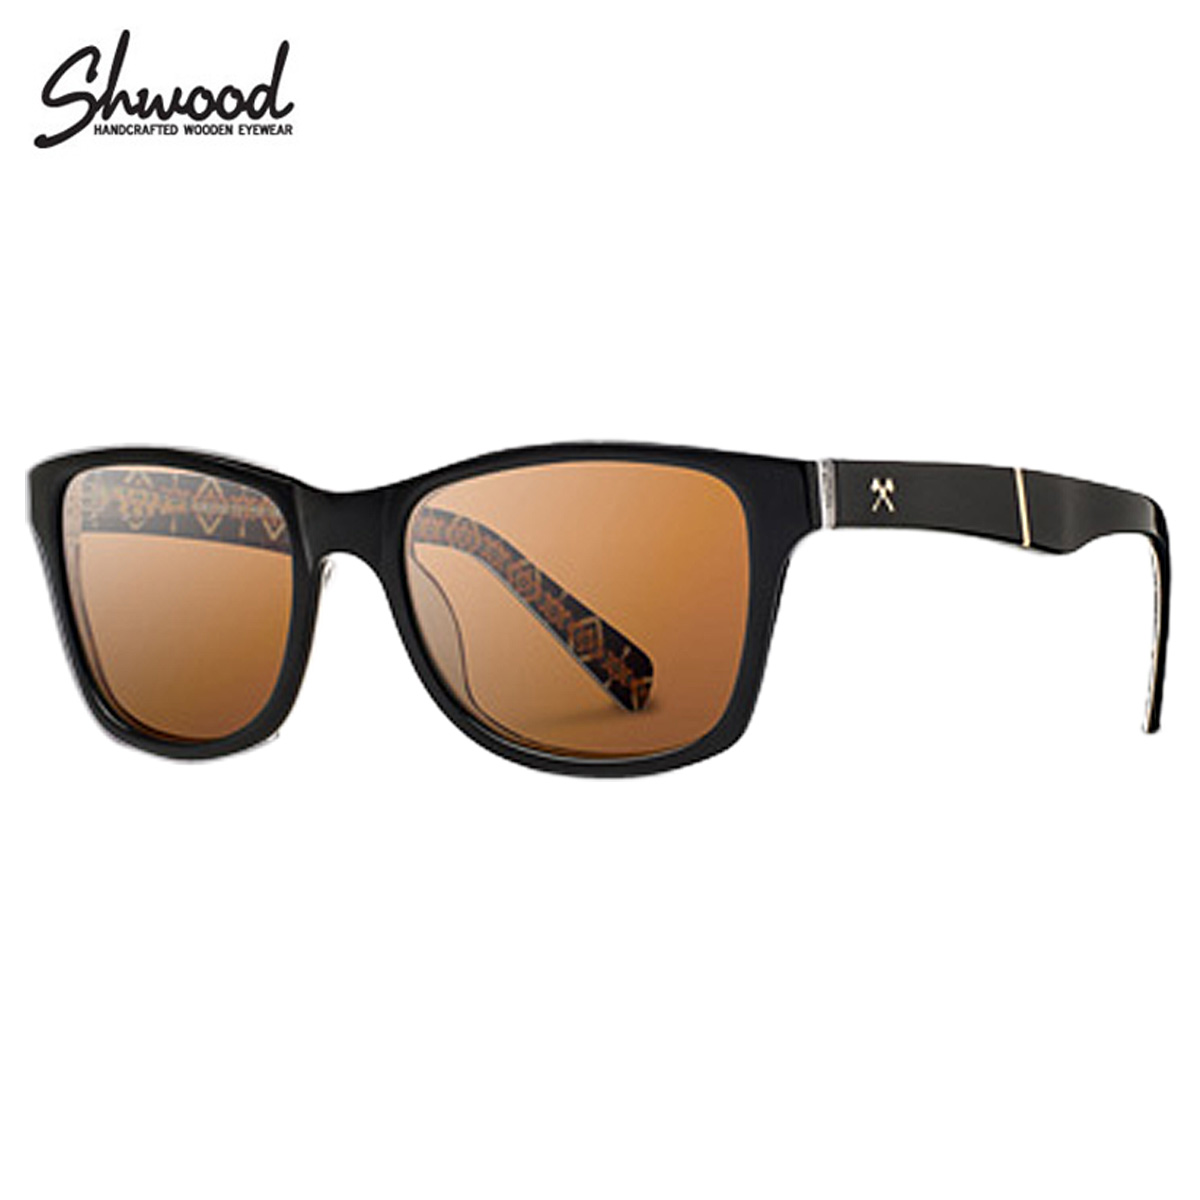 887d6a04a4 ALLSPORTS  Sud Shwood Pendleton PENDLETON mens Womens sunglasses handmade  Rancho Brown CANDY  7 28 new in stock